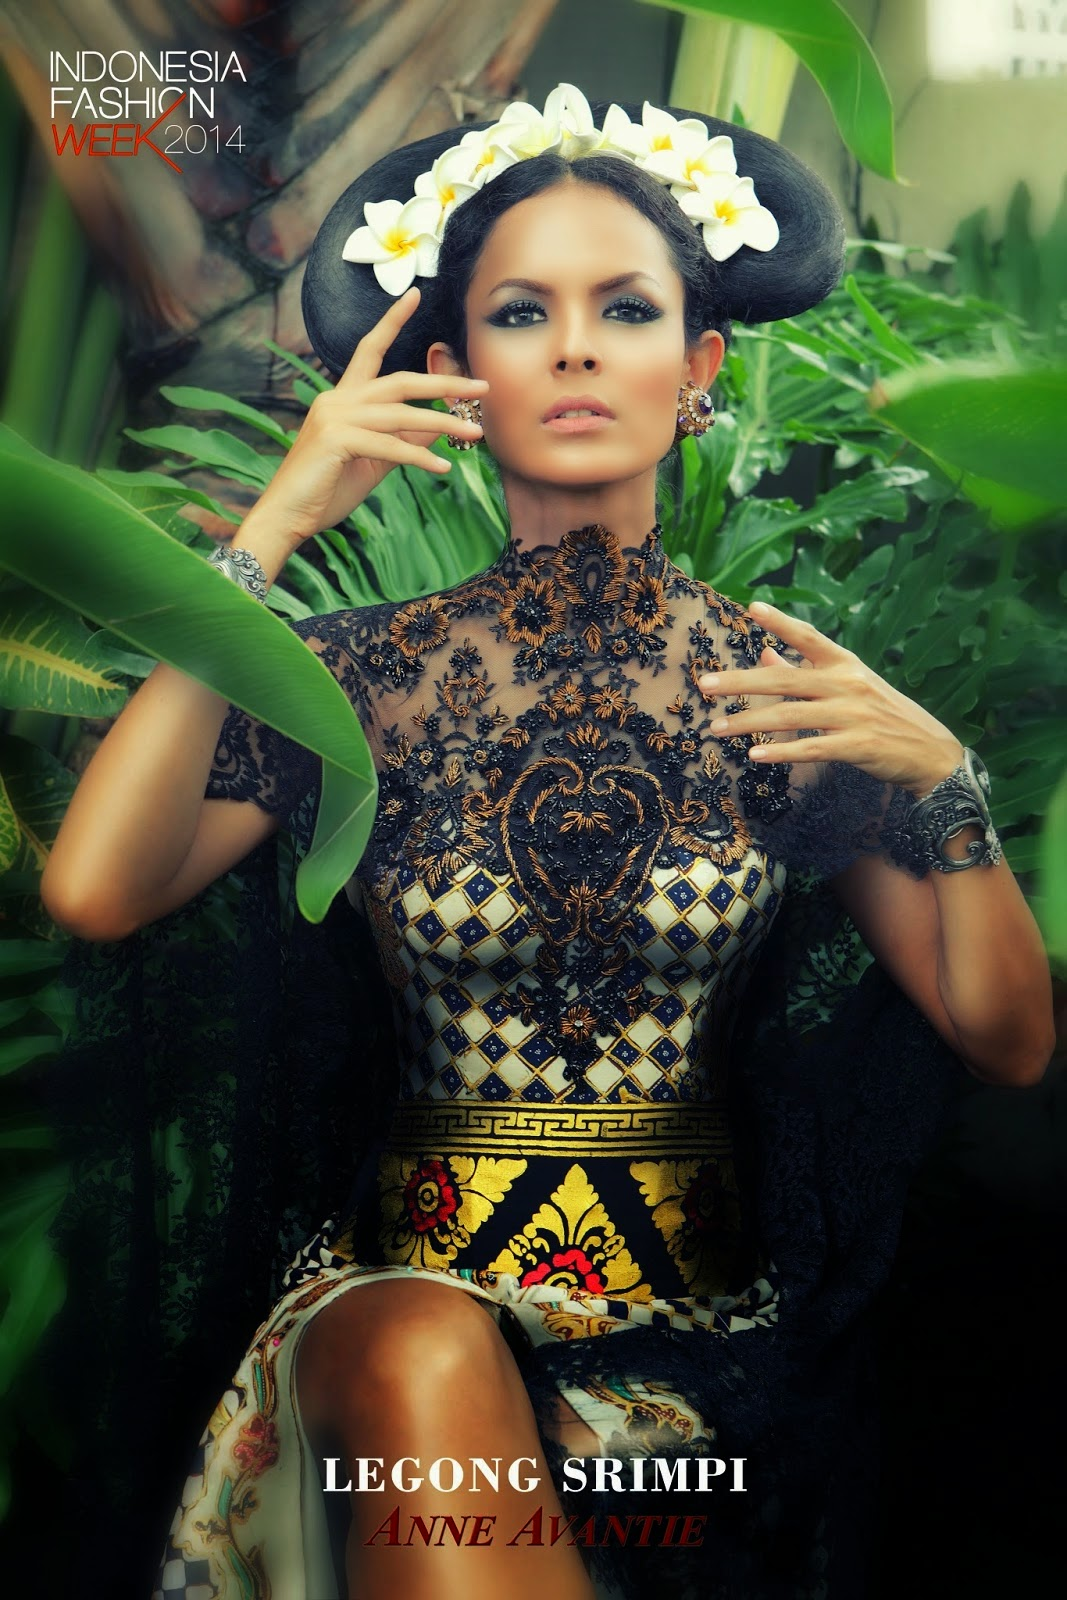 Indonesia Fashion Week 2014 Legong Srimpi Collection By